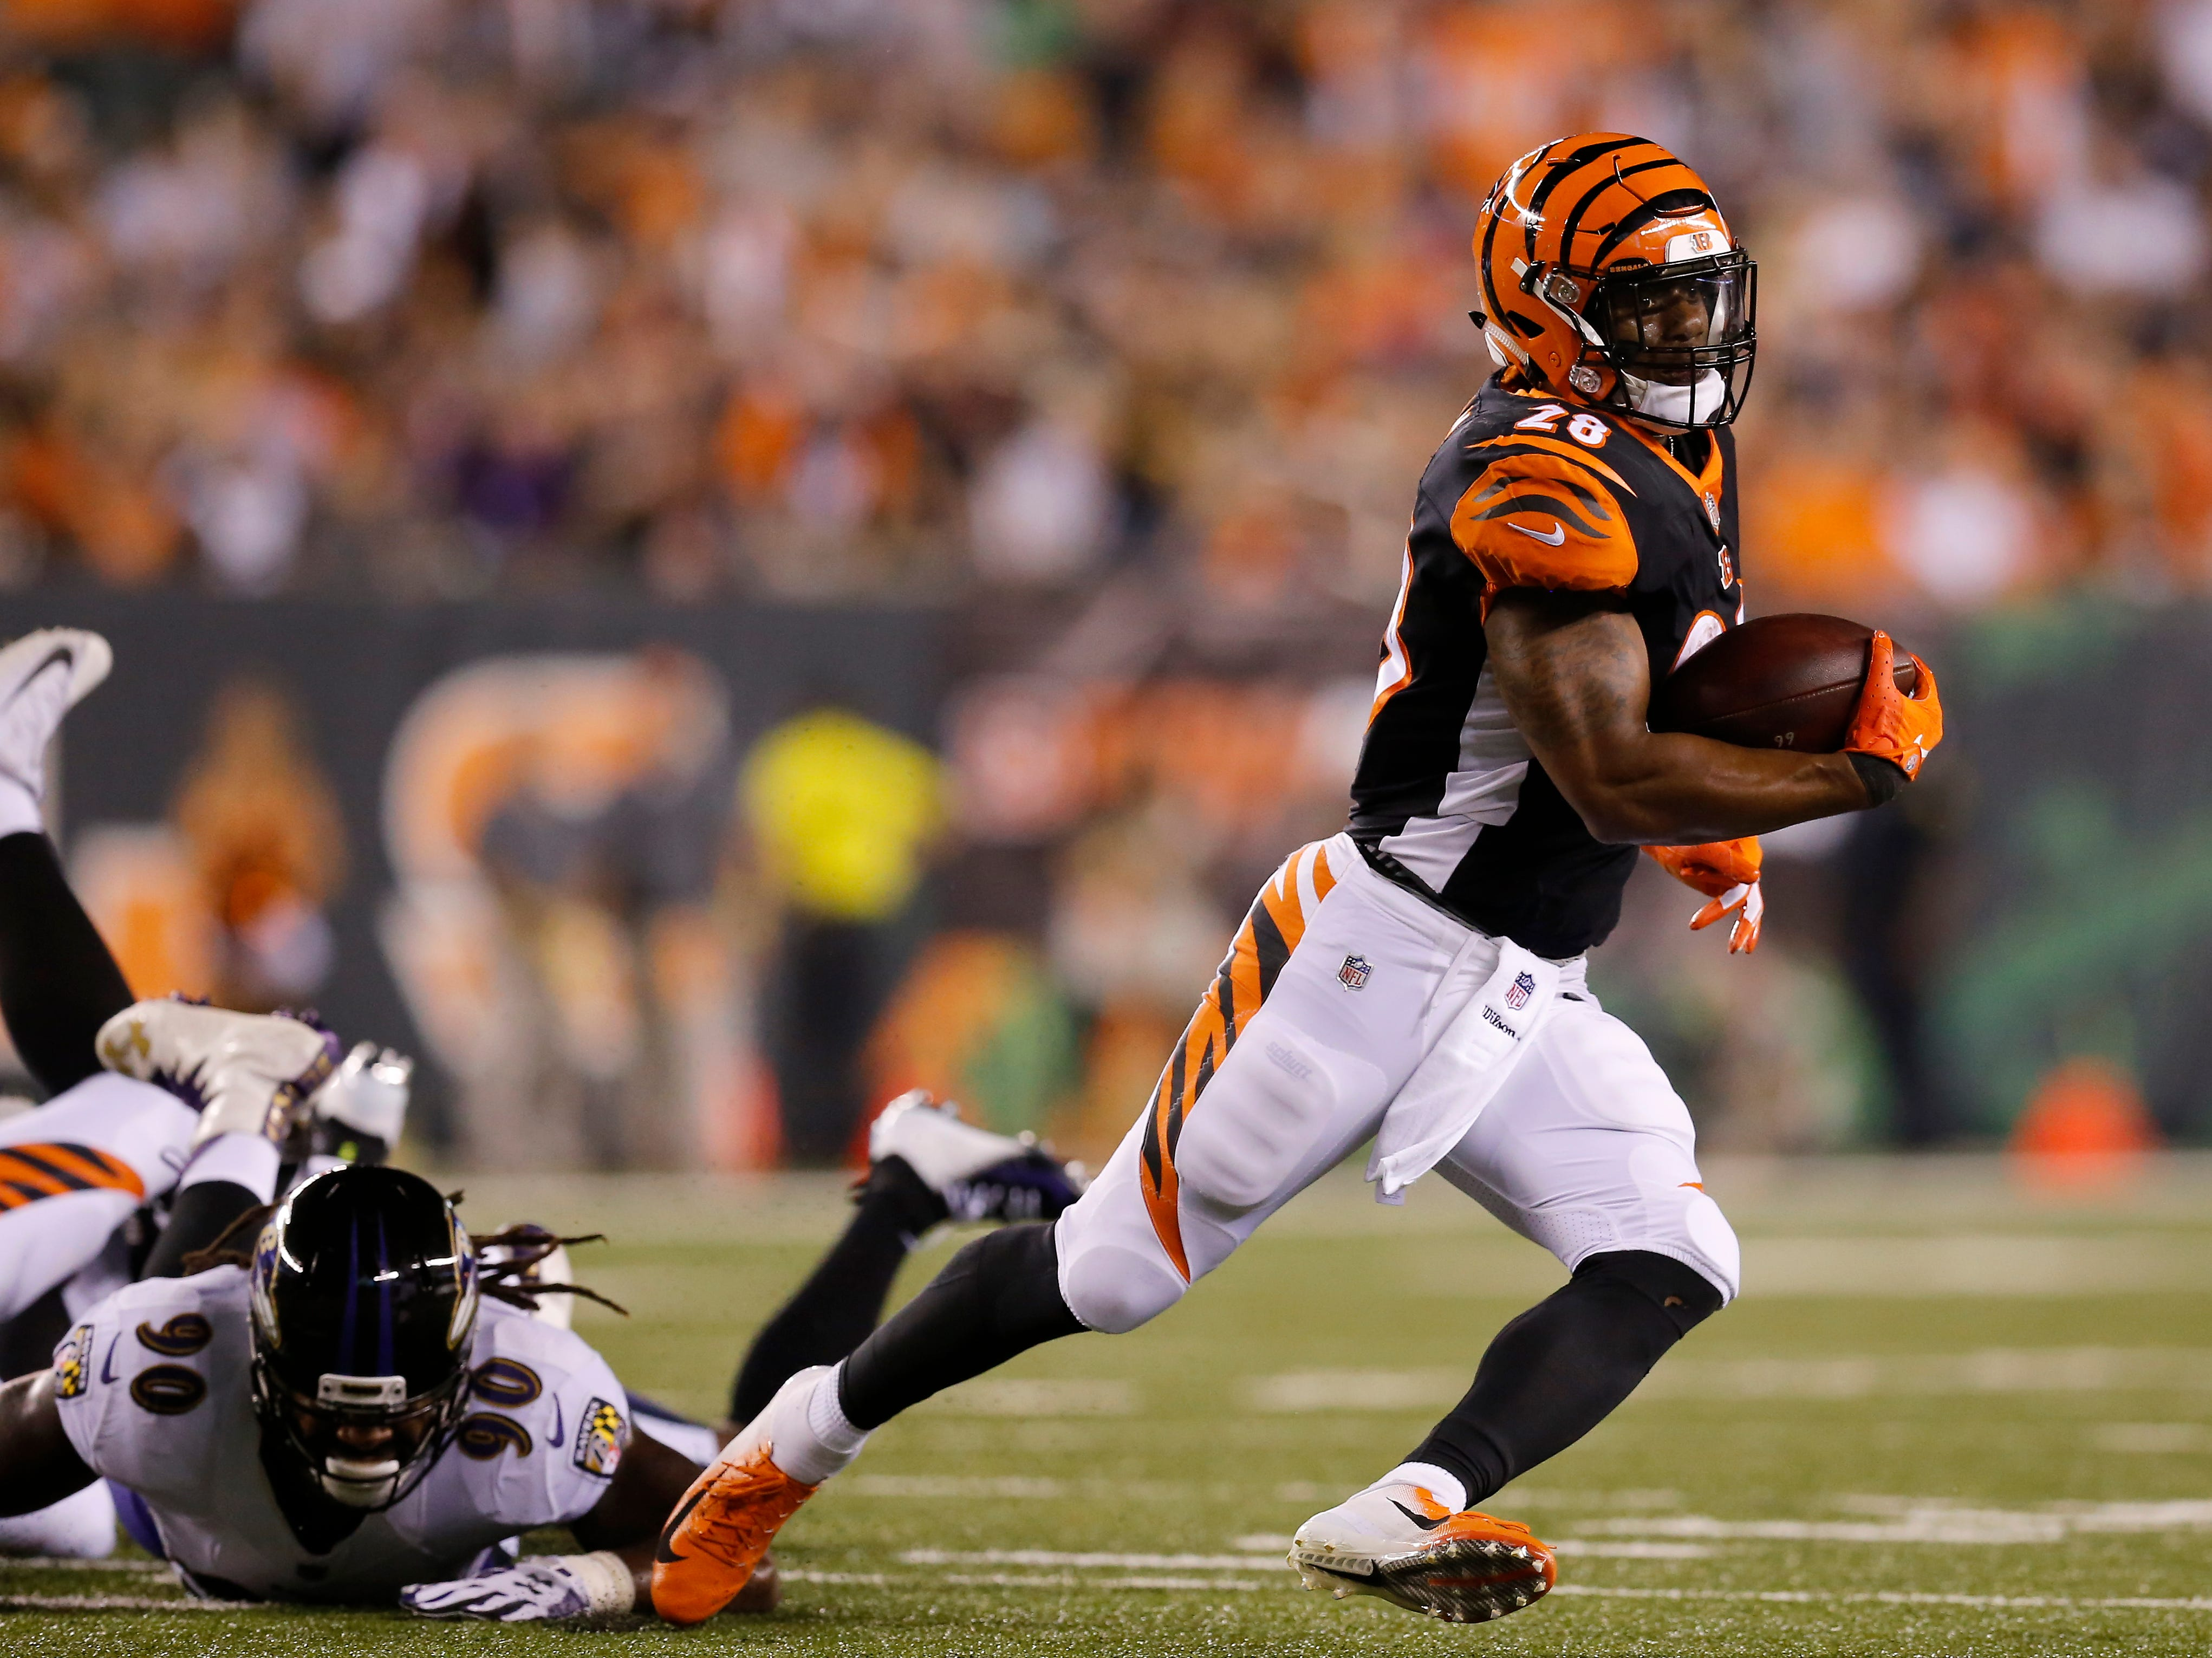 Cincinnati Bengals running back Joe Mixon (28) cuts on a carry in the first quarter of the NFL Week 2 game between the Cincinnati Bengals and the Baltimore Ravens at Paul Brown Stadium in downtown Cincinnati on Thursday, Sept. 13, 2018. The Bengals led 28-14 at halftime.